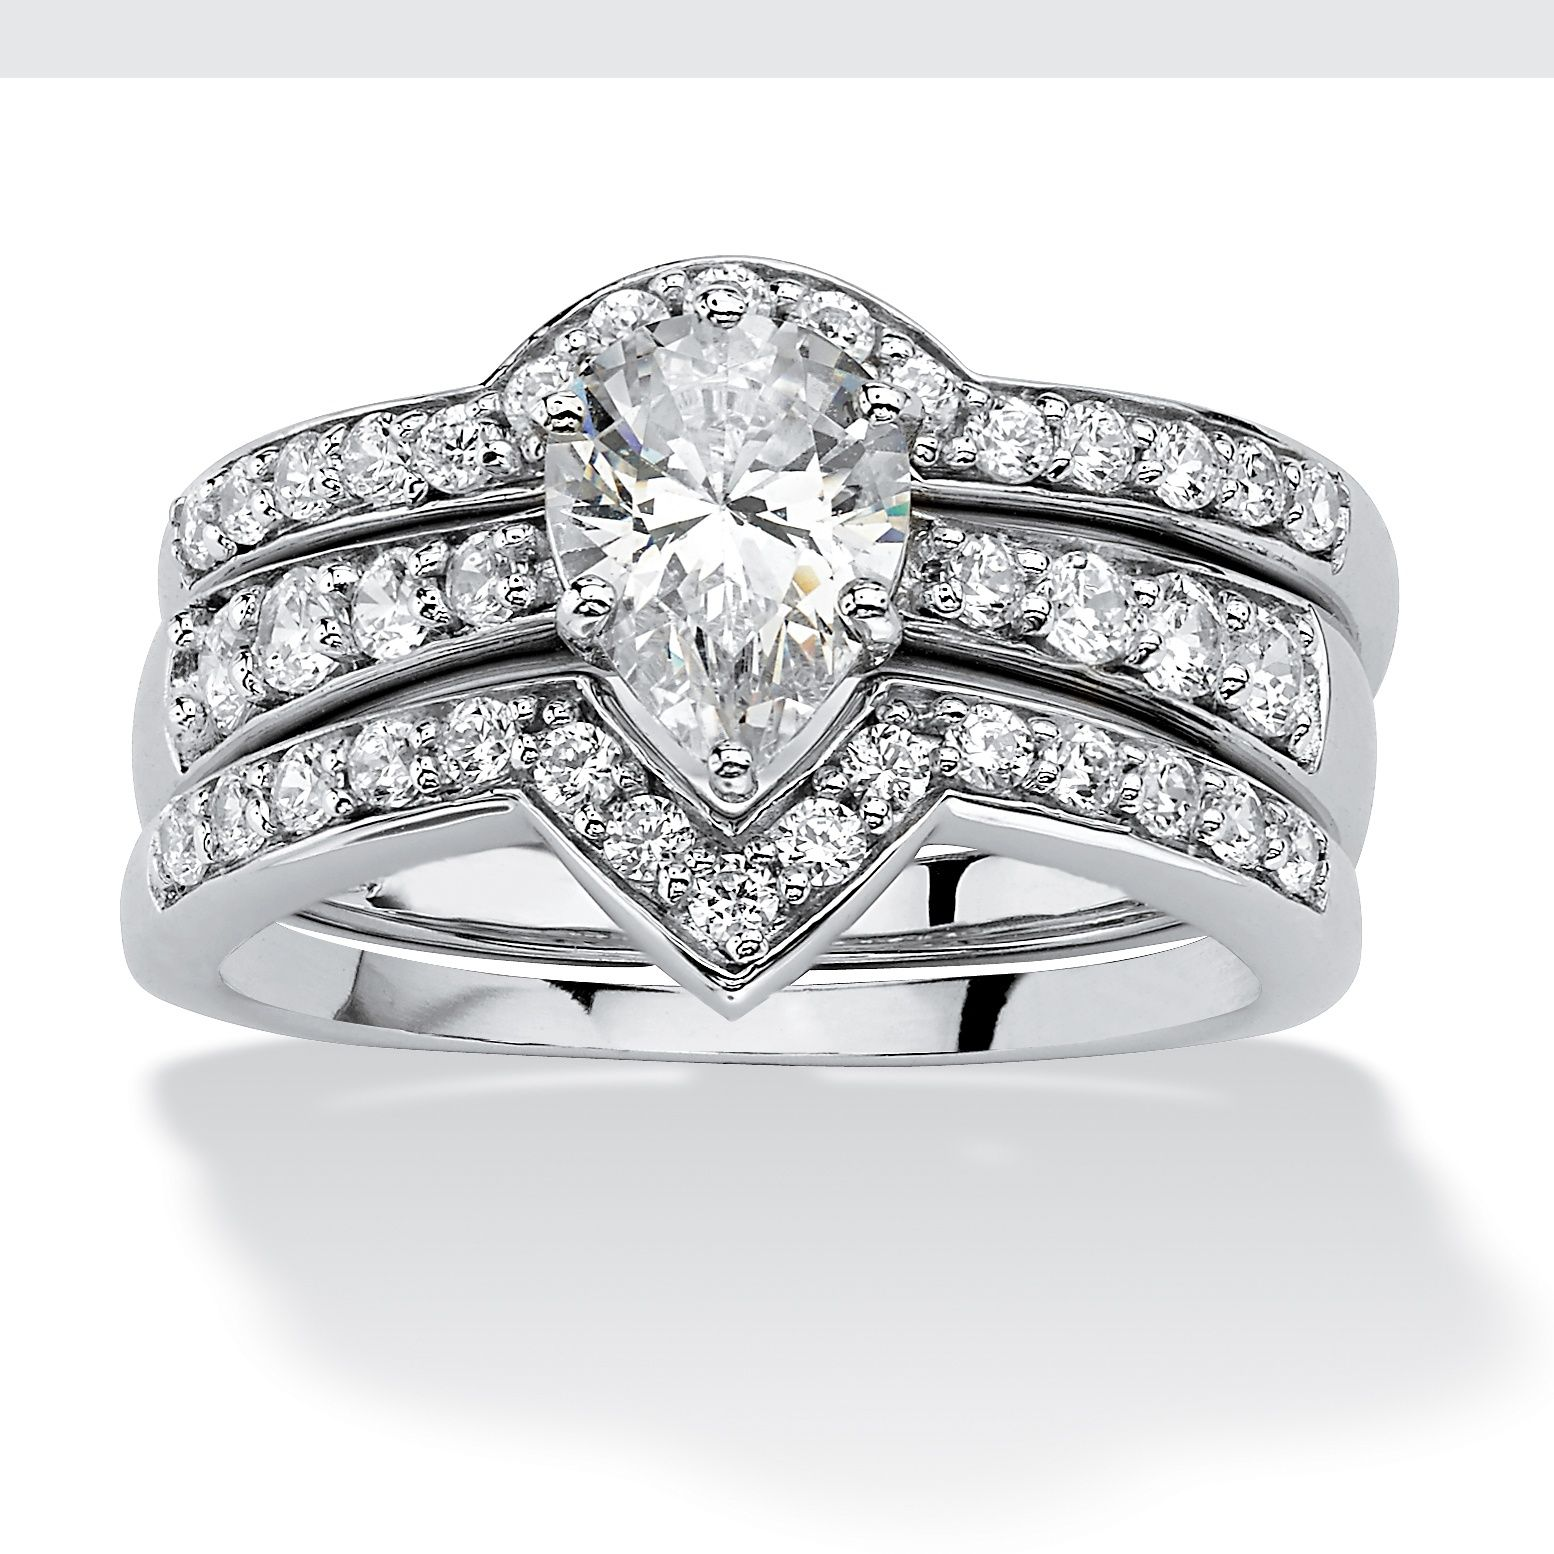 0596e21198 Show-off in sparkling style - wear our shimmering cubic zirconia ring three  piece set reflecting pure glamour